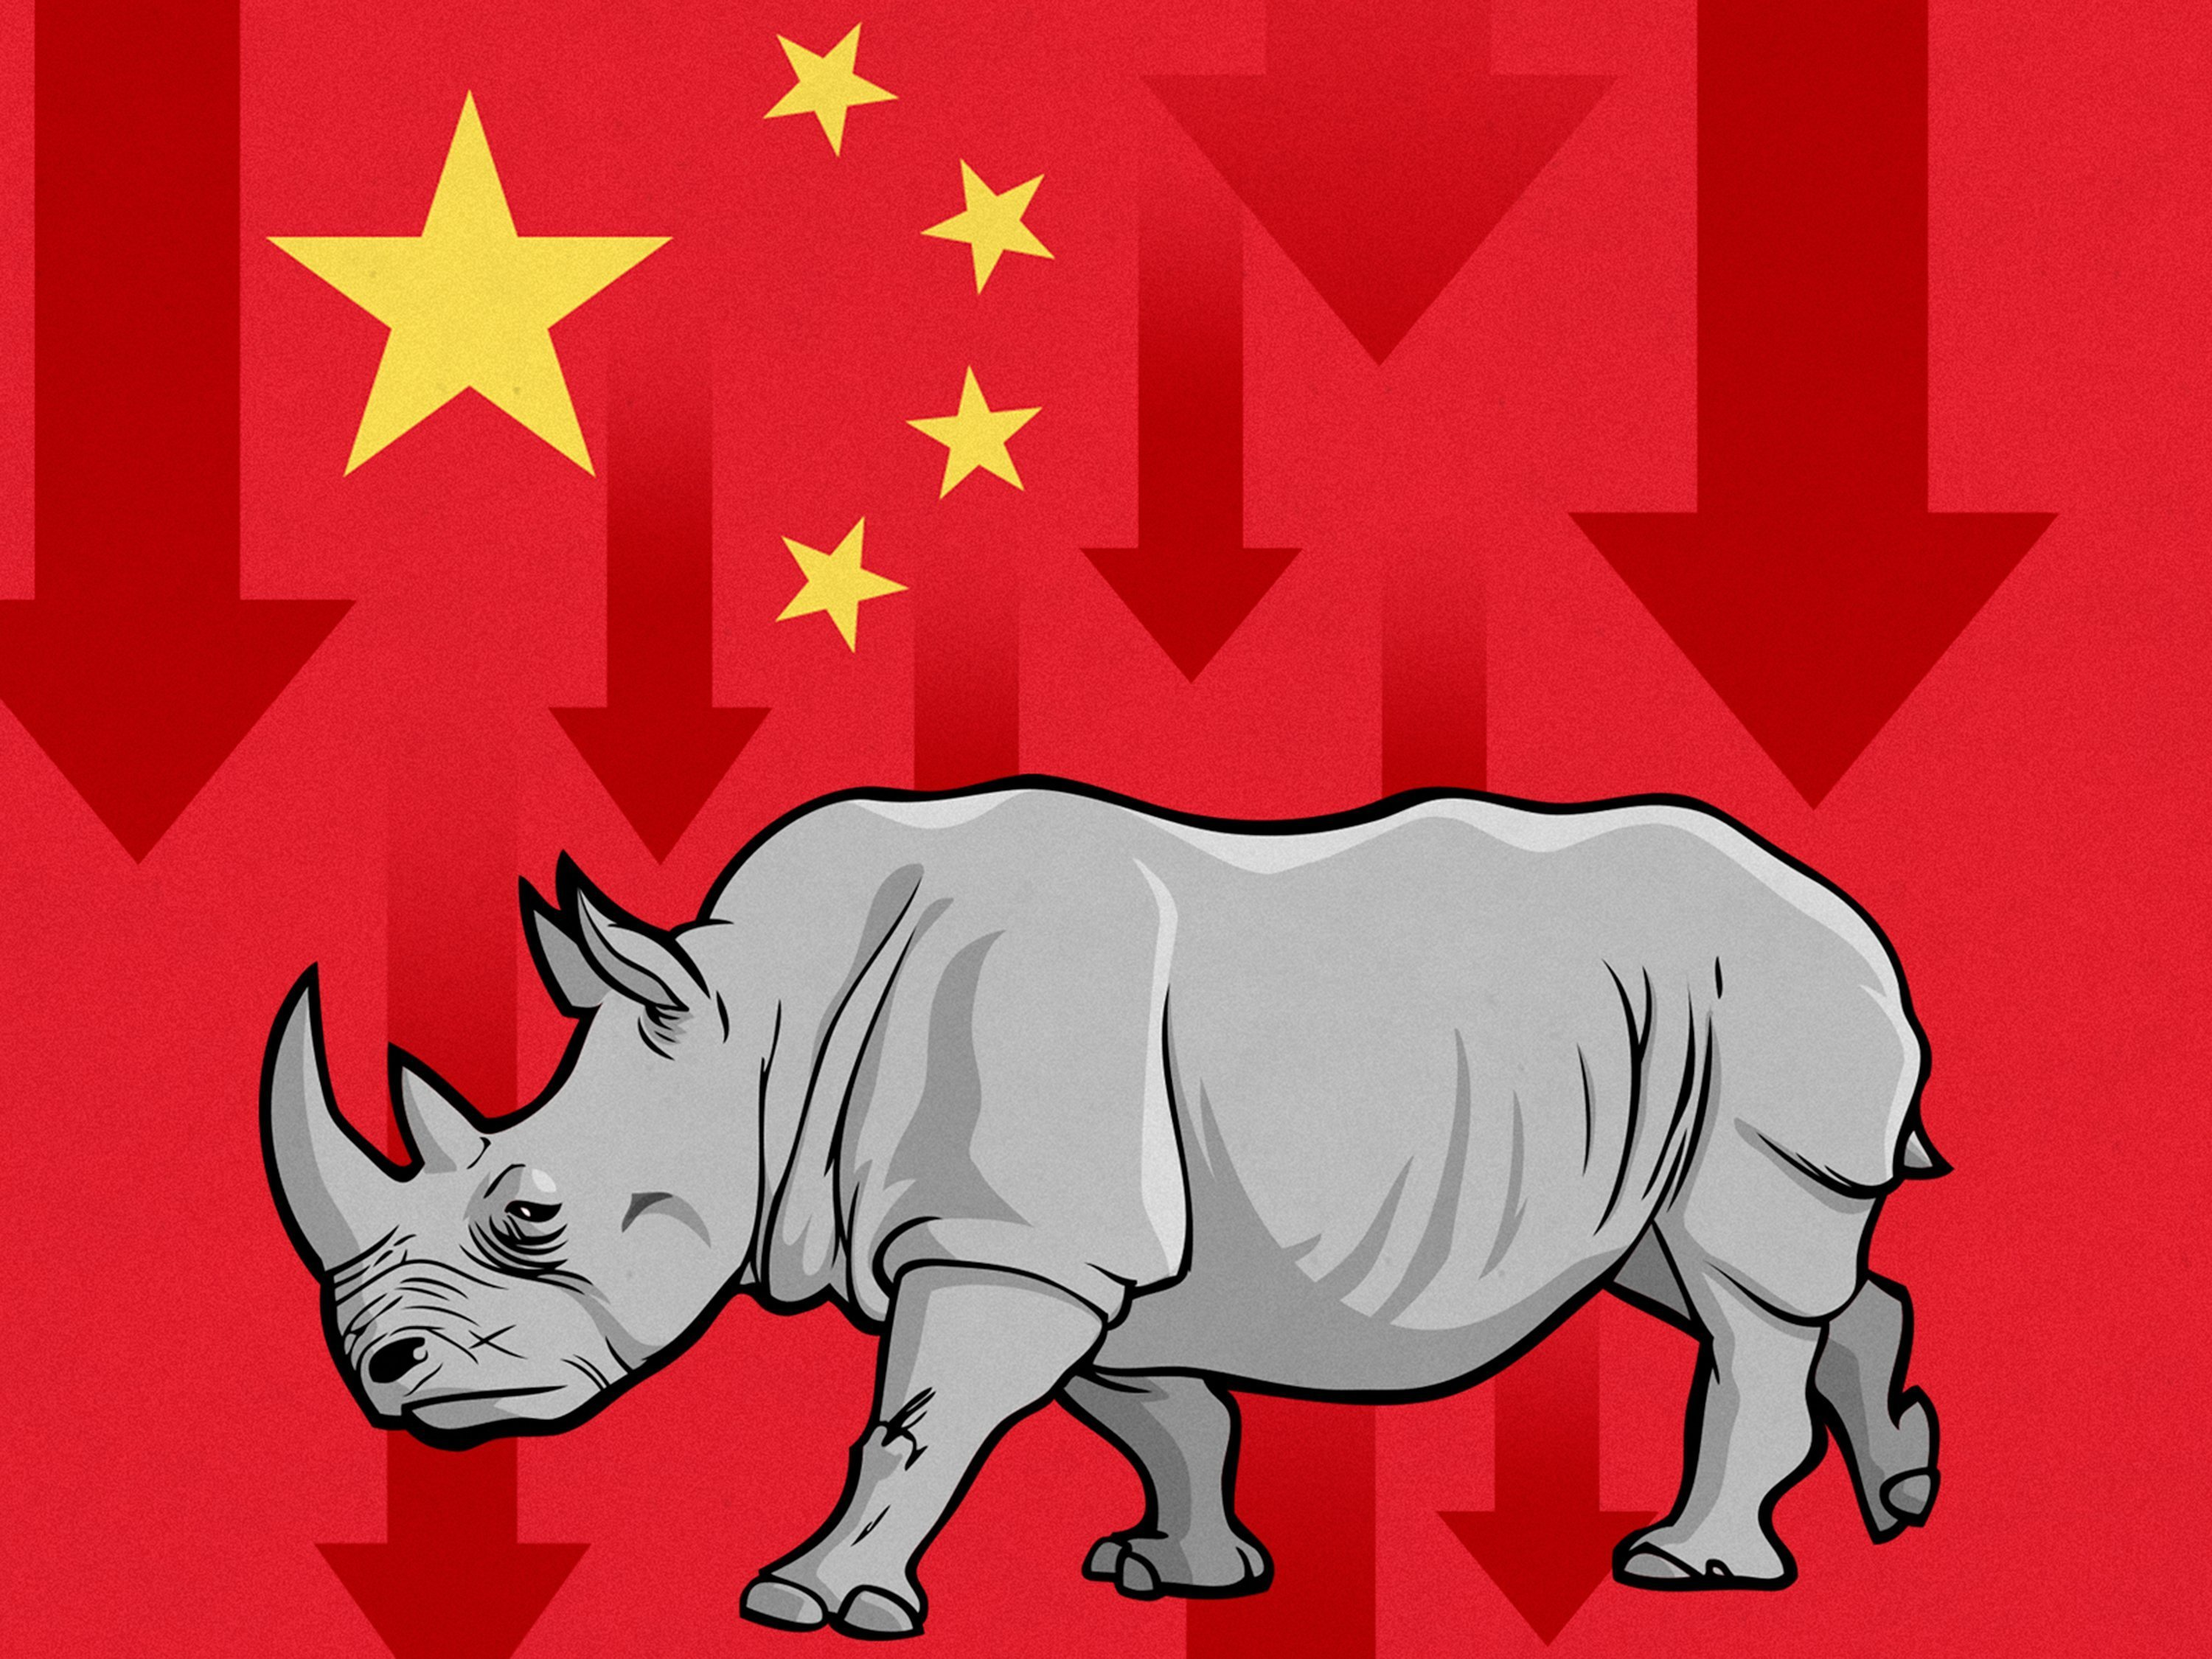 """Many investors lose sleep over """"black swans"""" -- hard-to-predict events that cause chaos, like terror attacks or the bursting of the dot-com bubble. Now authorities in China are being urged to watch for """"gray rhinos"""" -- obvious dangers that are often..."""